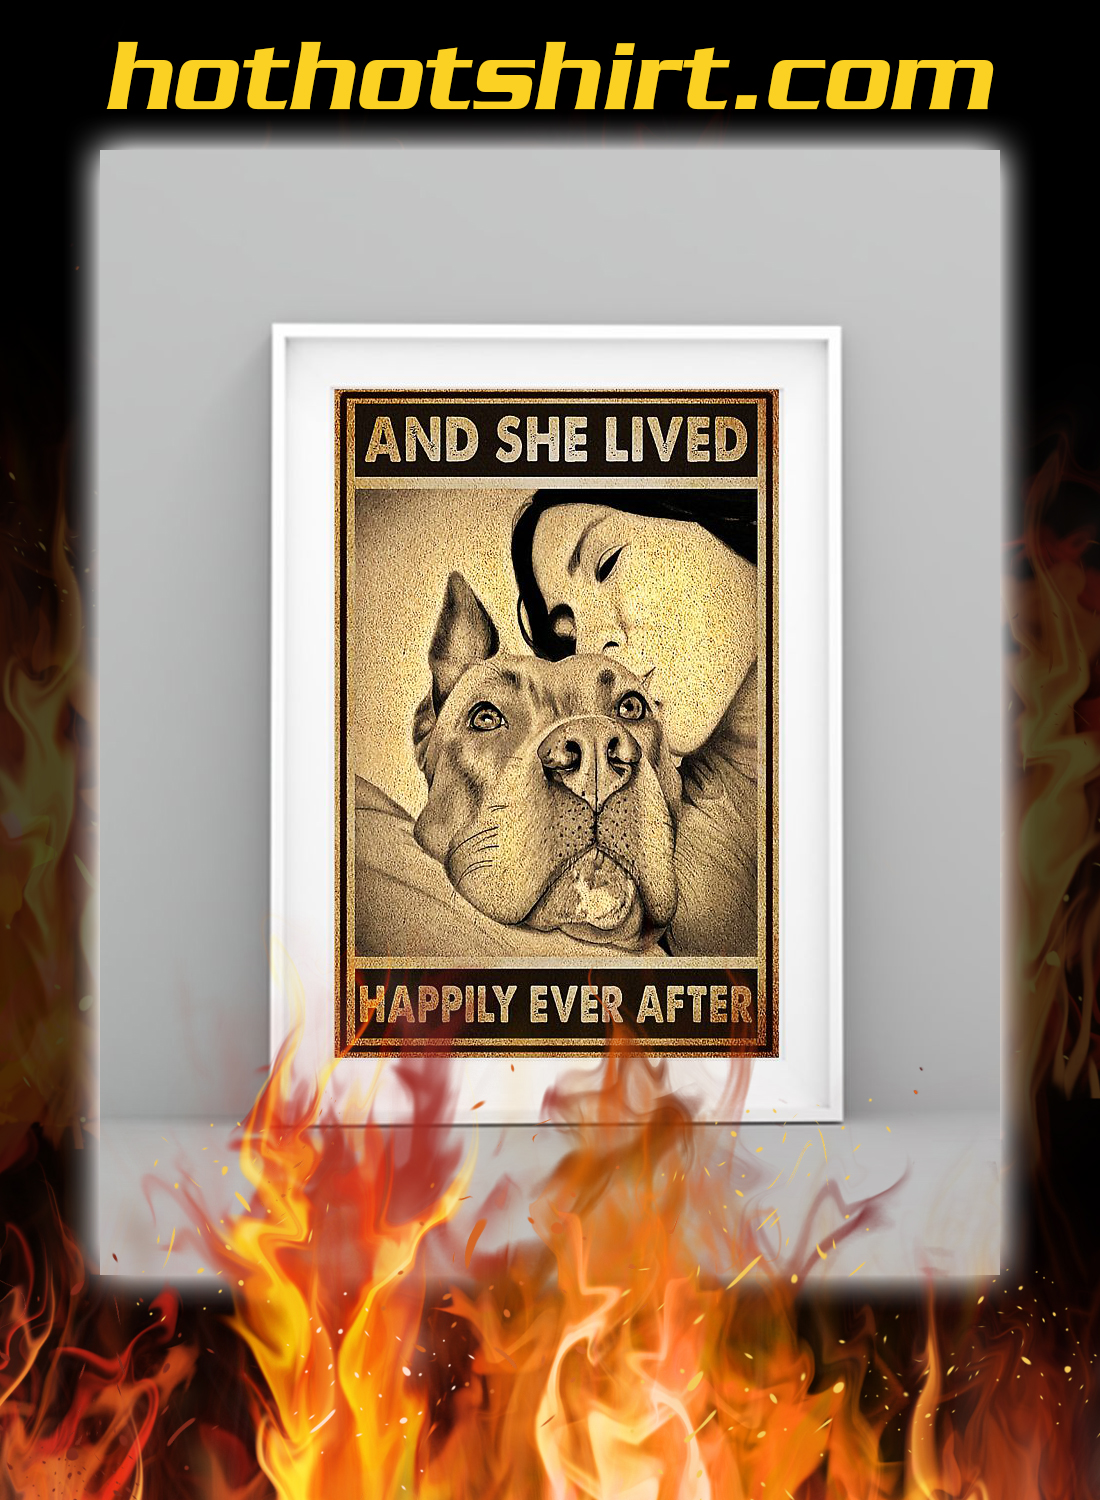 Pitbull and she lived happily ever after poster 1